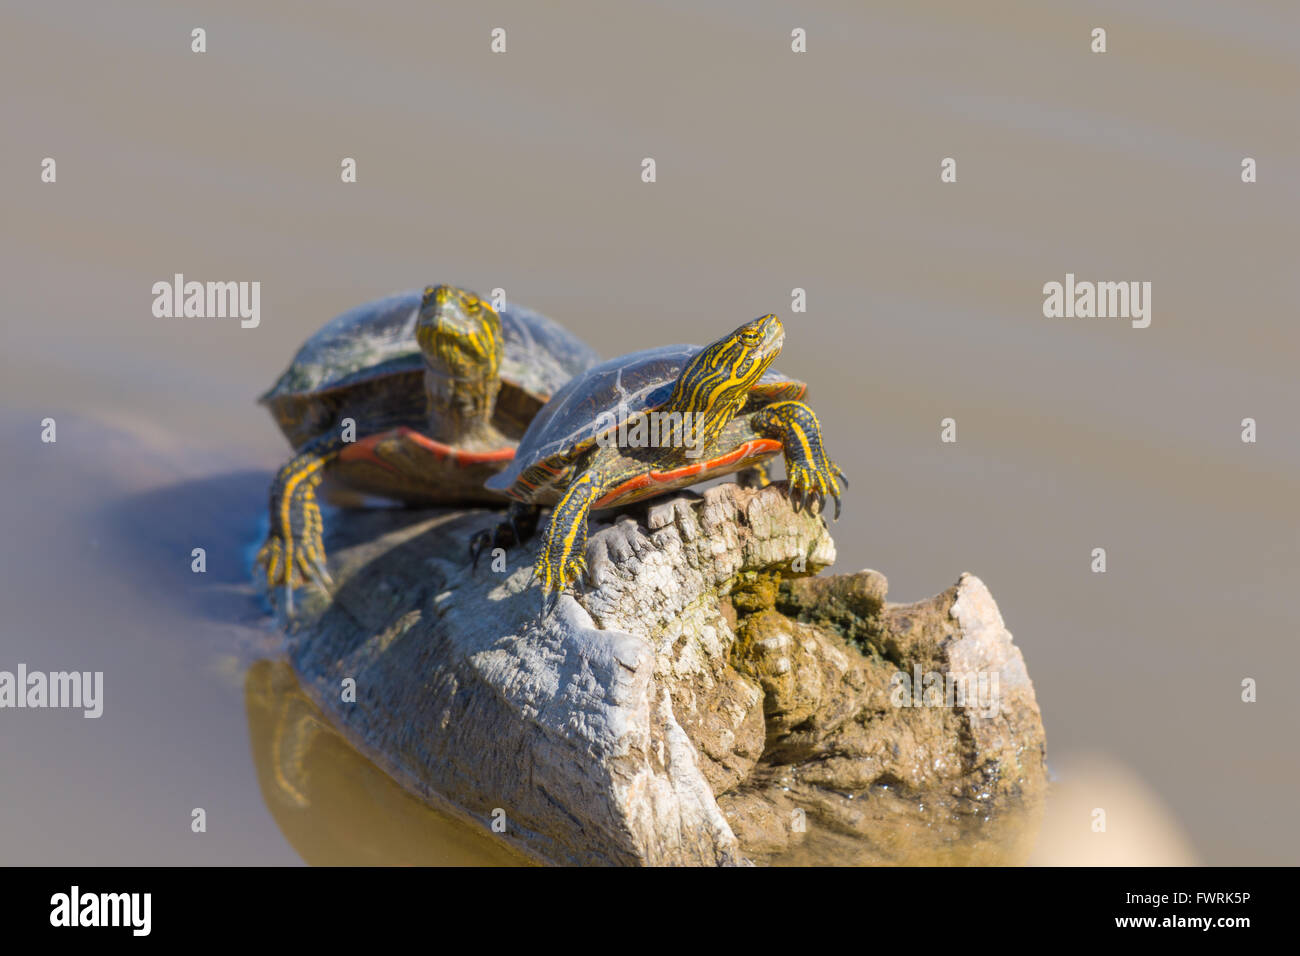 Western Painted Turtles, (Chrysemys picta bellii), basking at Bosque del Apache National Wildlife Refuge, New Mexico, - Stock Image